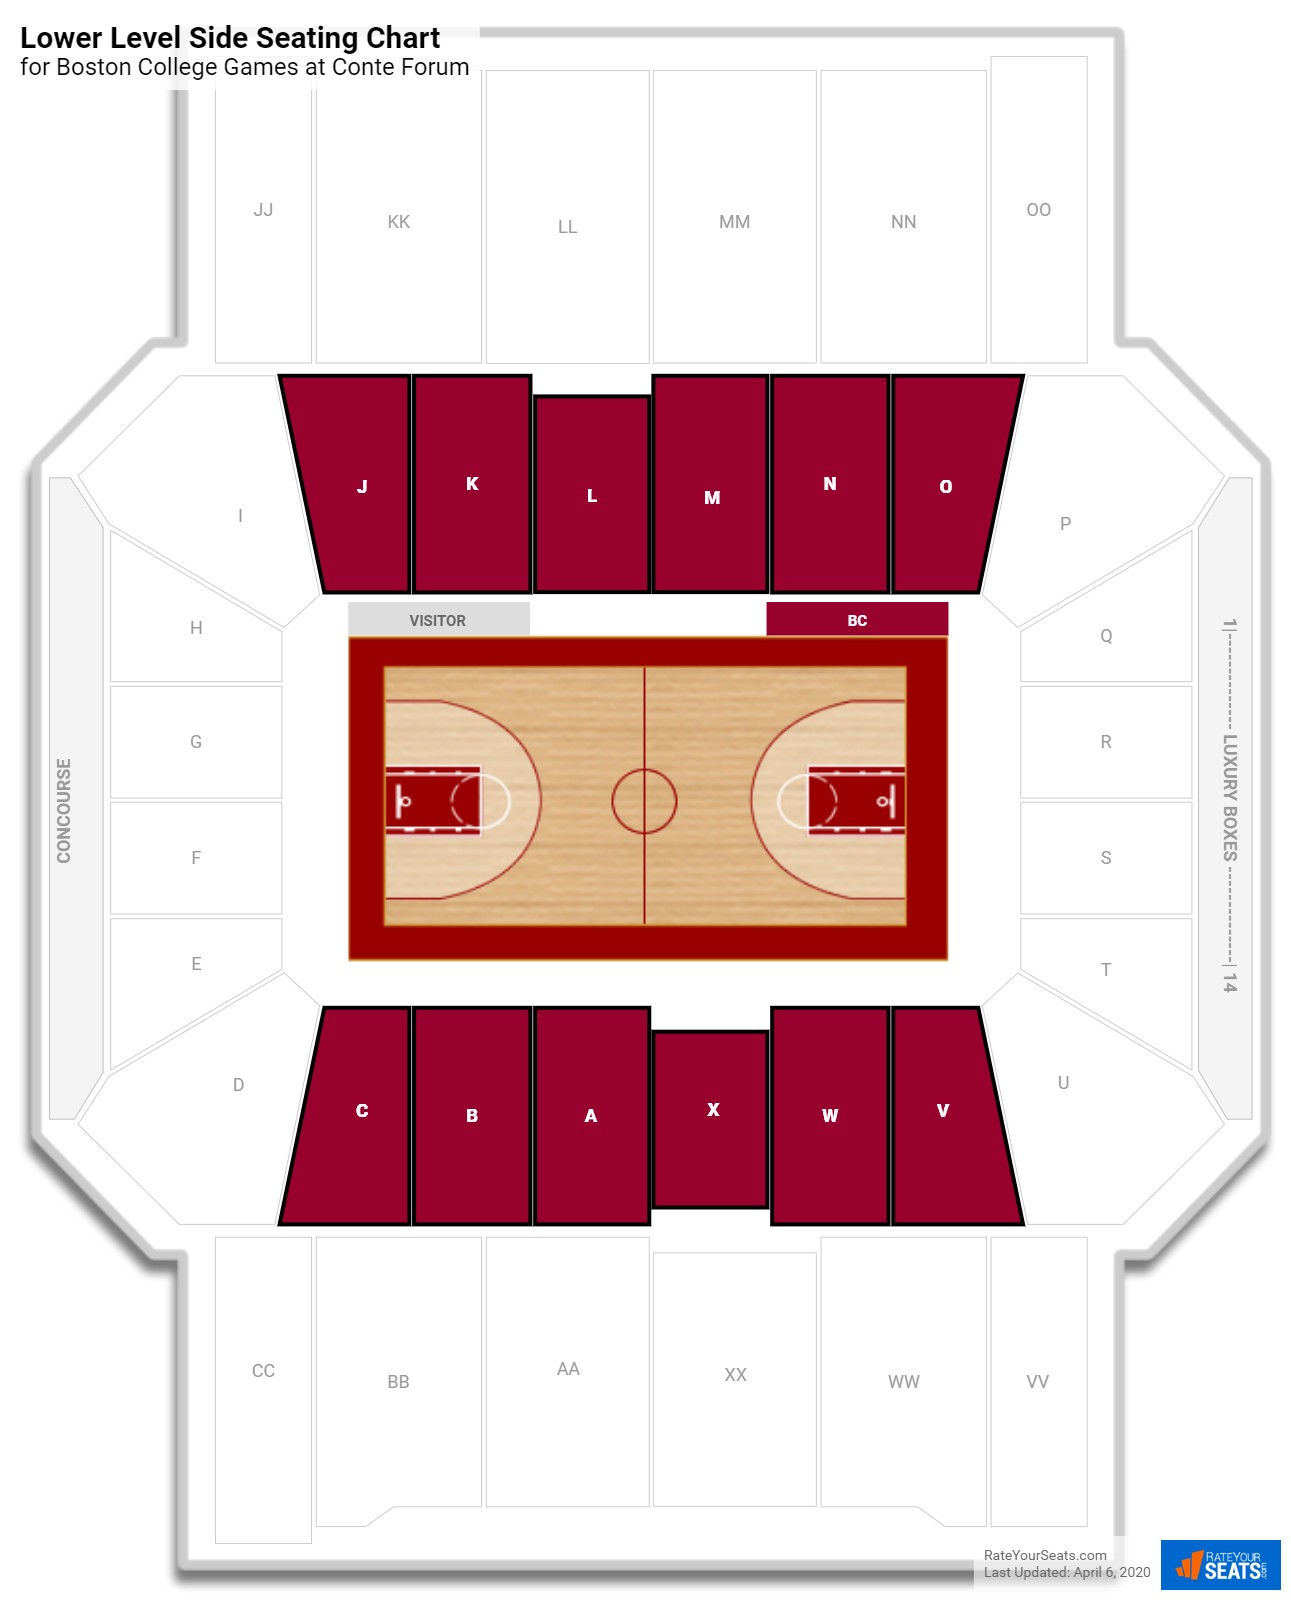 Conte Forum Lower Level Side seating chart